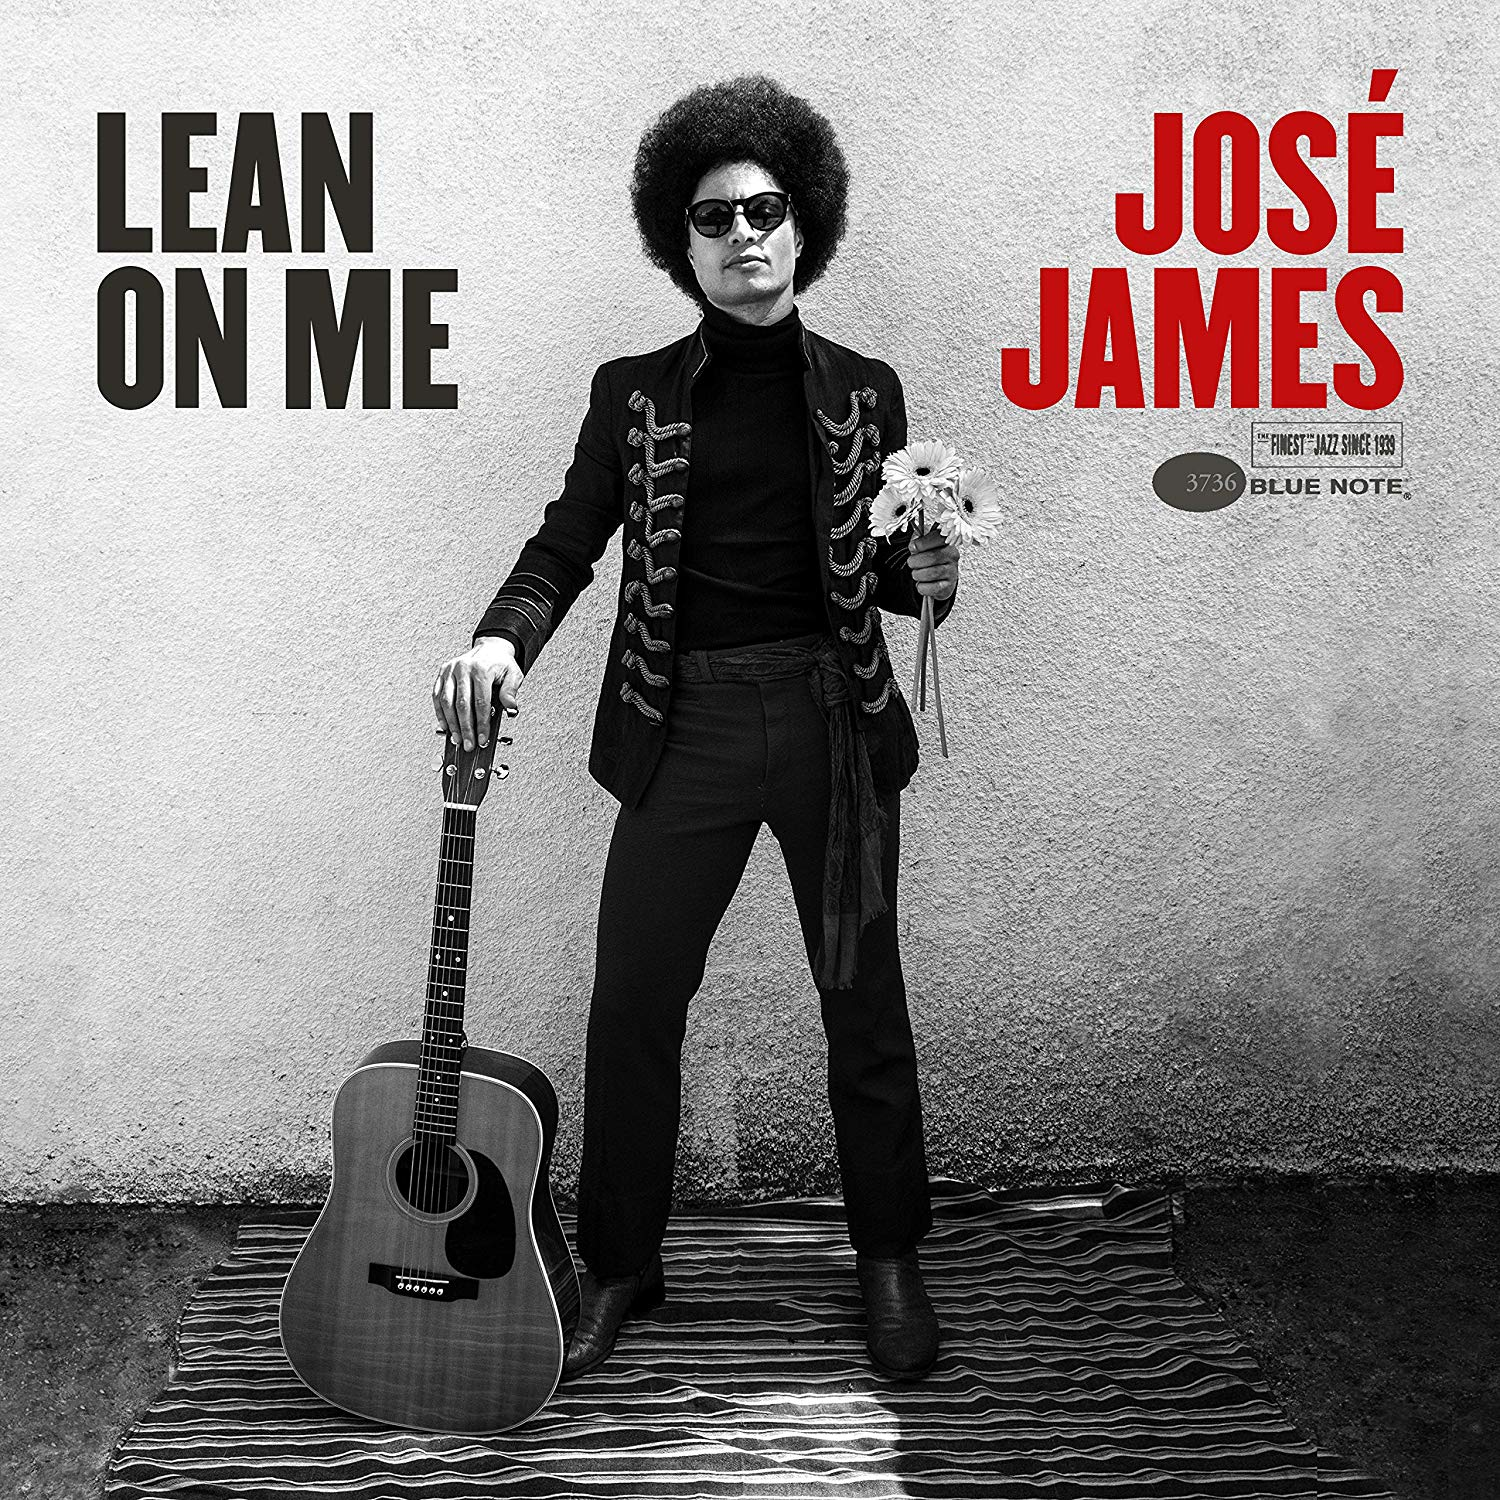 JOSÉ JAMES - Lean On Me cover